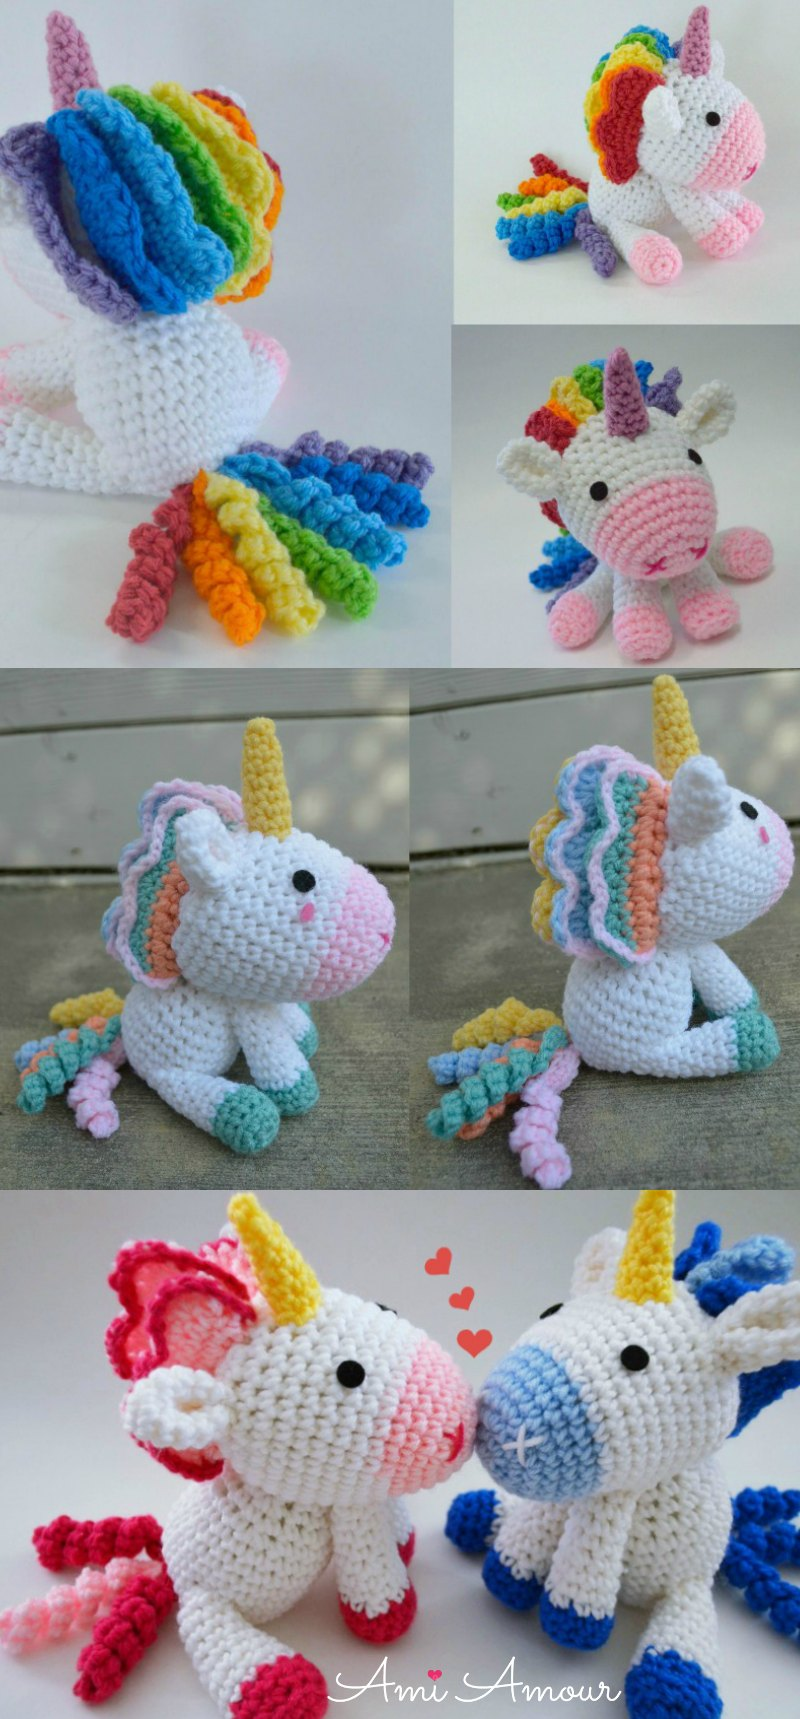 Rainbow Unicorn Amigurumis